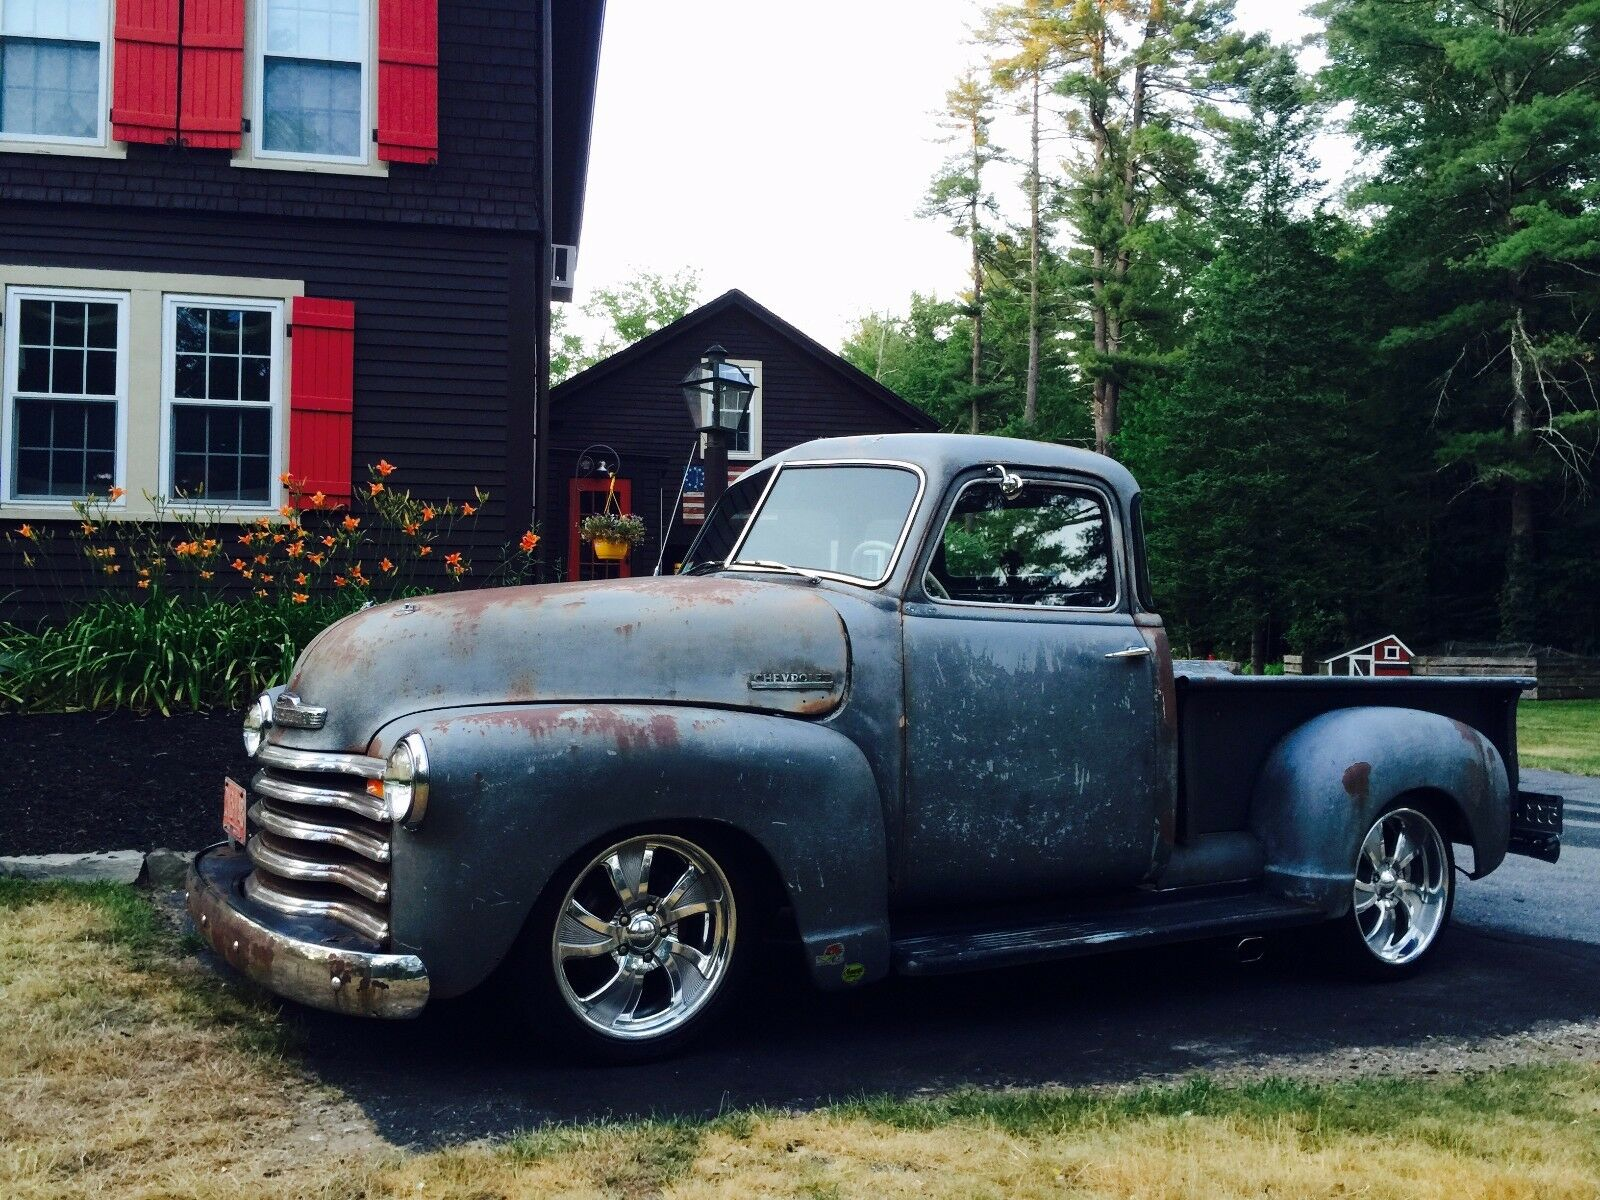 1948 Chevrolet Other Pickups  Rat Rod, Patina, V8, Muncie 4 Speed, 12 Bolt, Muscle Truck, Old School, Hot Rod